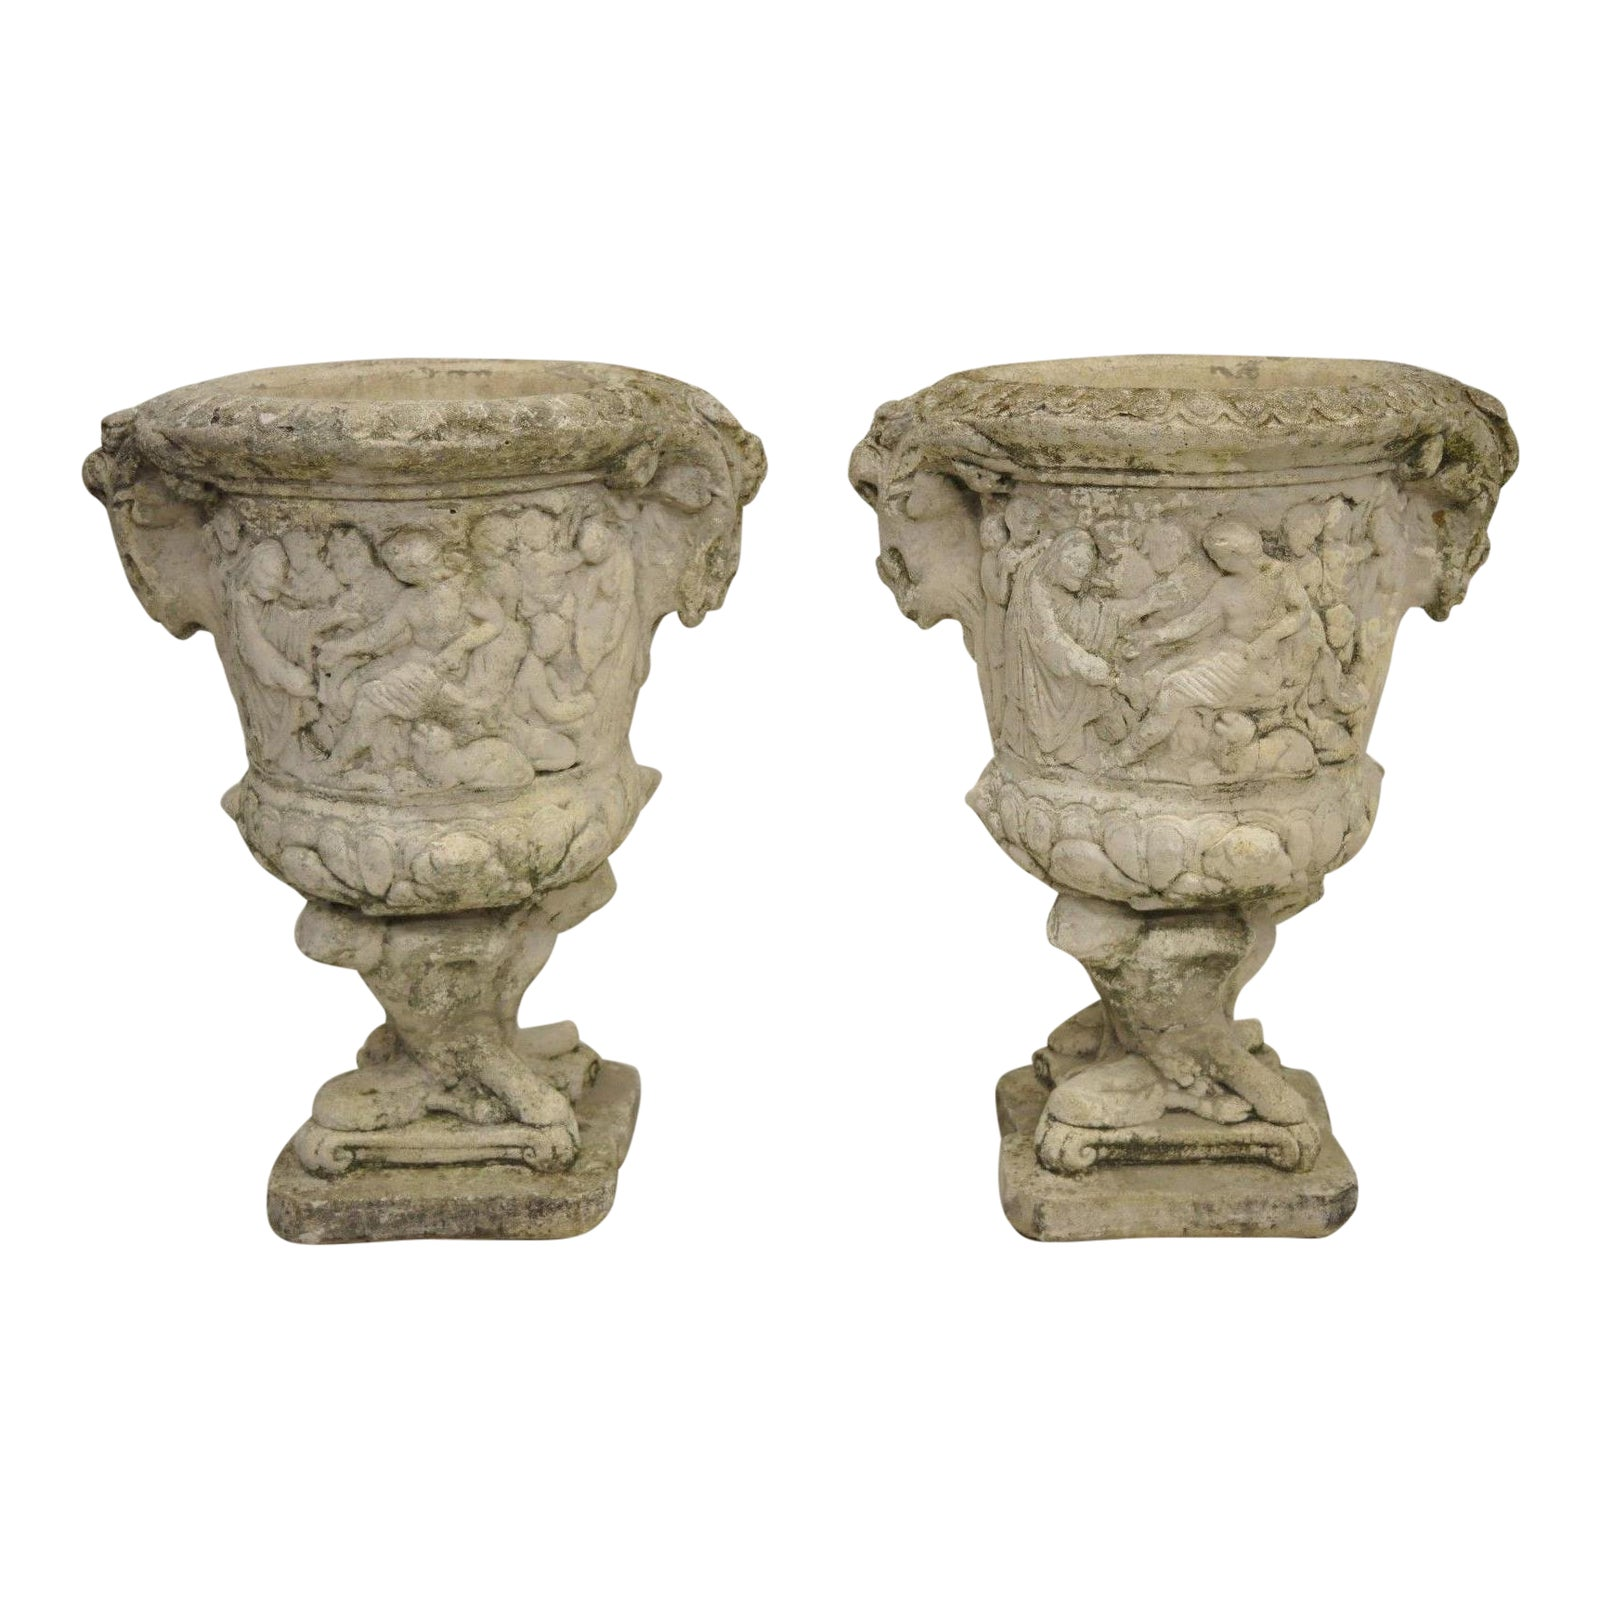 Pair of Greek Figural Classical Scenes Concrete Garden Planter Urns